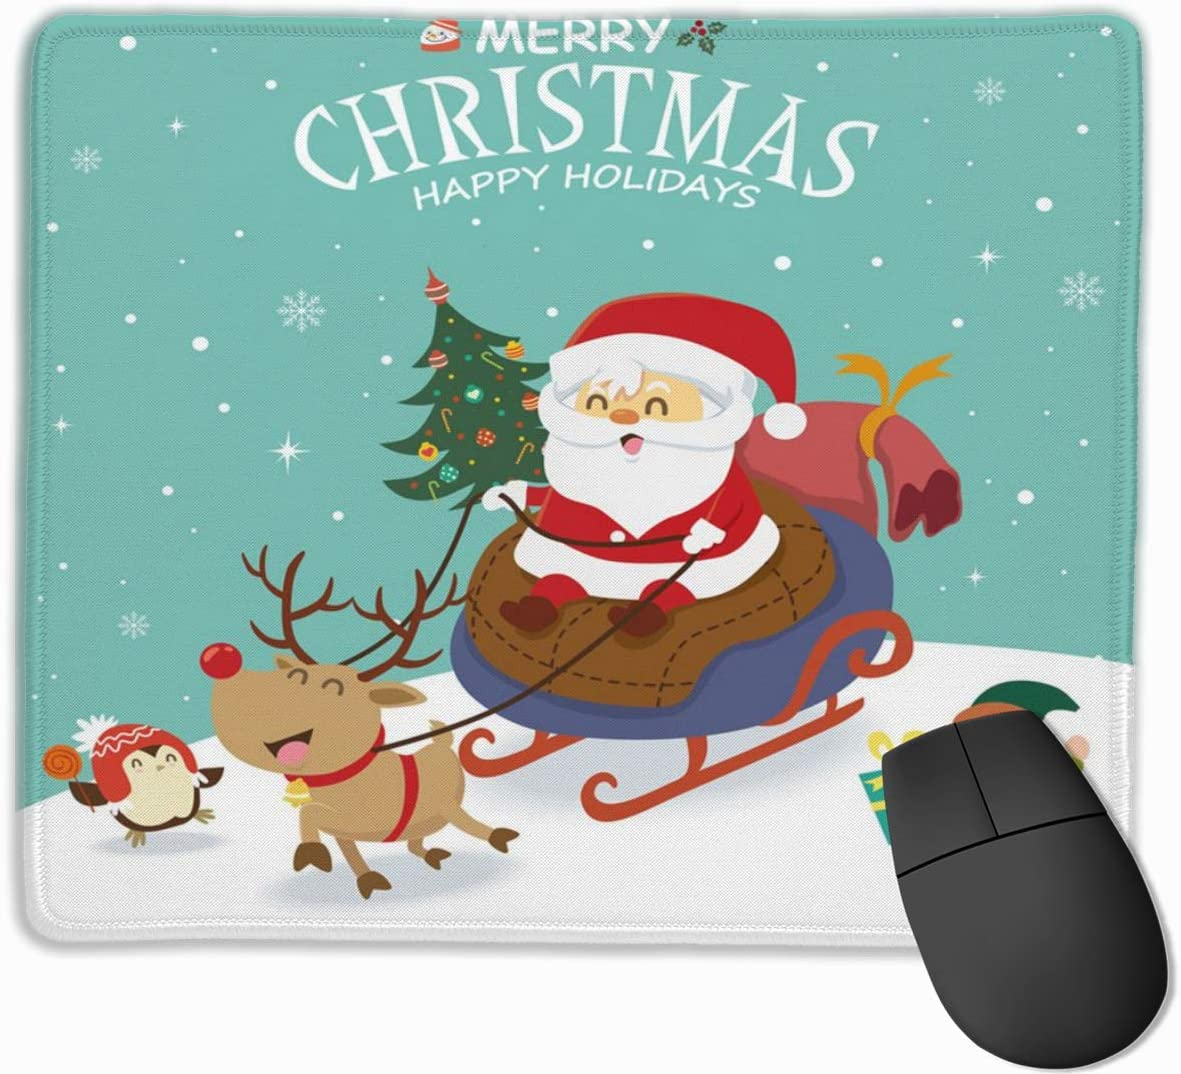 Santa Claus in sled with Snowman Hustle Mouse Pad for Laptop Rectangular Non-Slip Gaming Mousepad Home Office Computer Pink